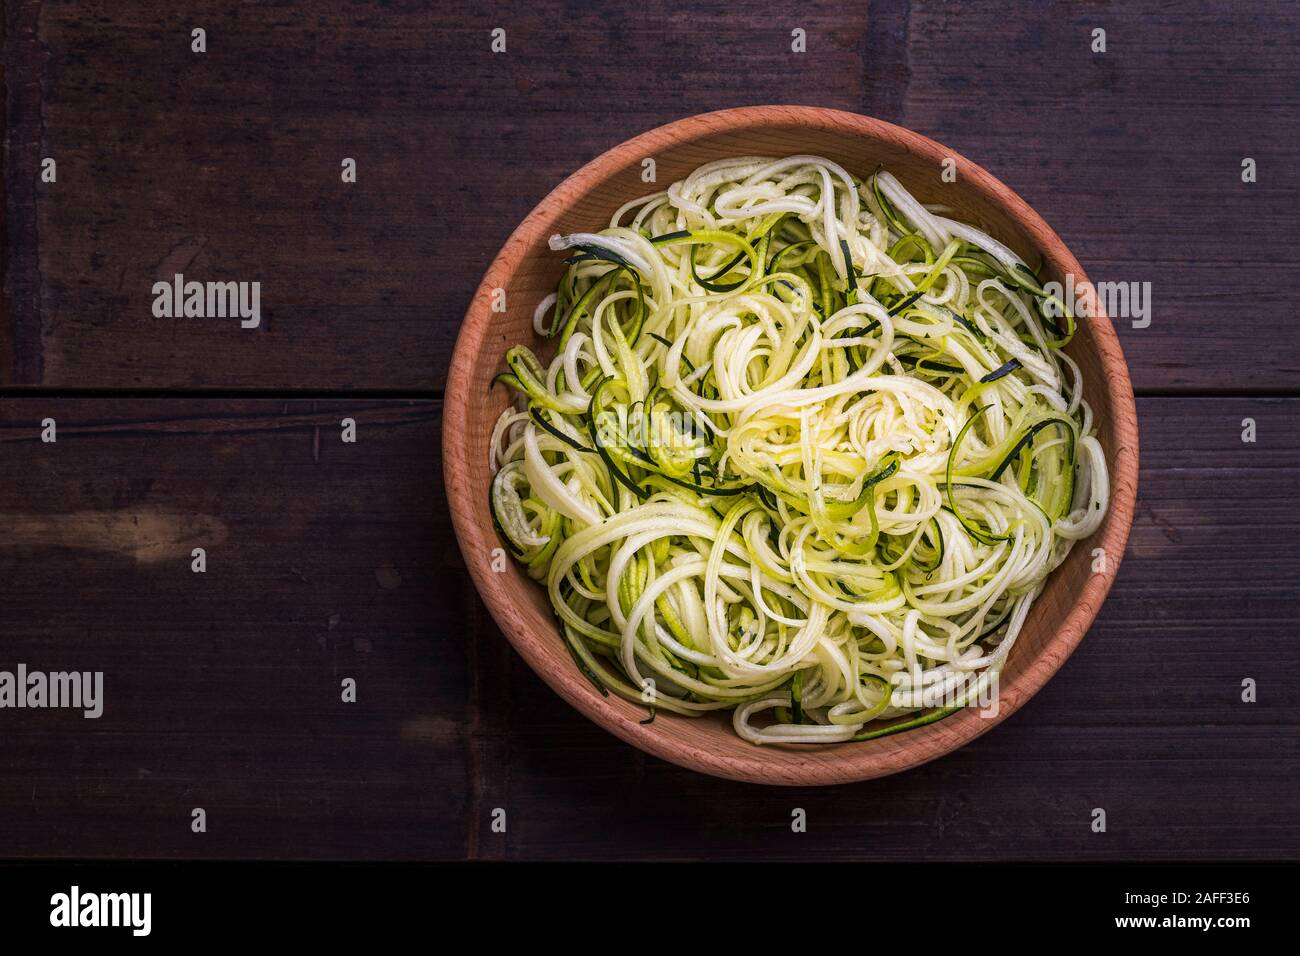 Zoodles zucchini noodles spiralized healthy  vegetable dish in a wooden bowl, on a dark bamboo table. Seen from above flat lay with copy space. Stock Photo